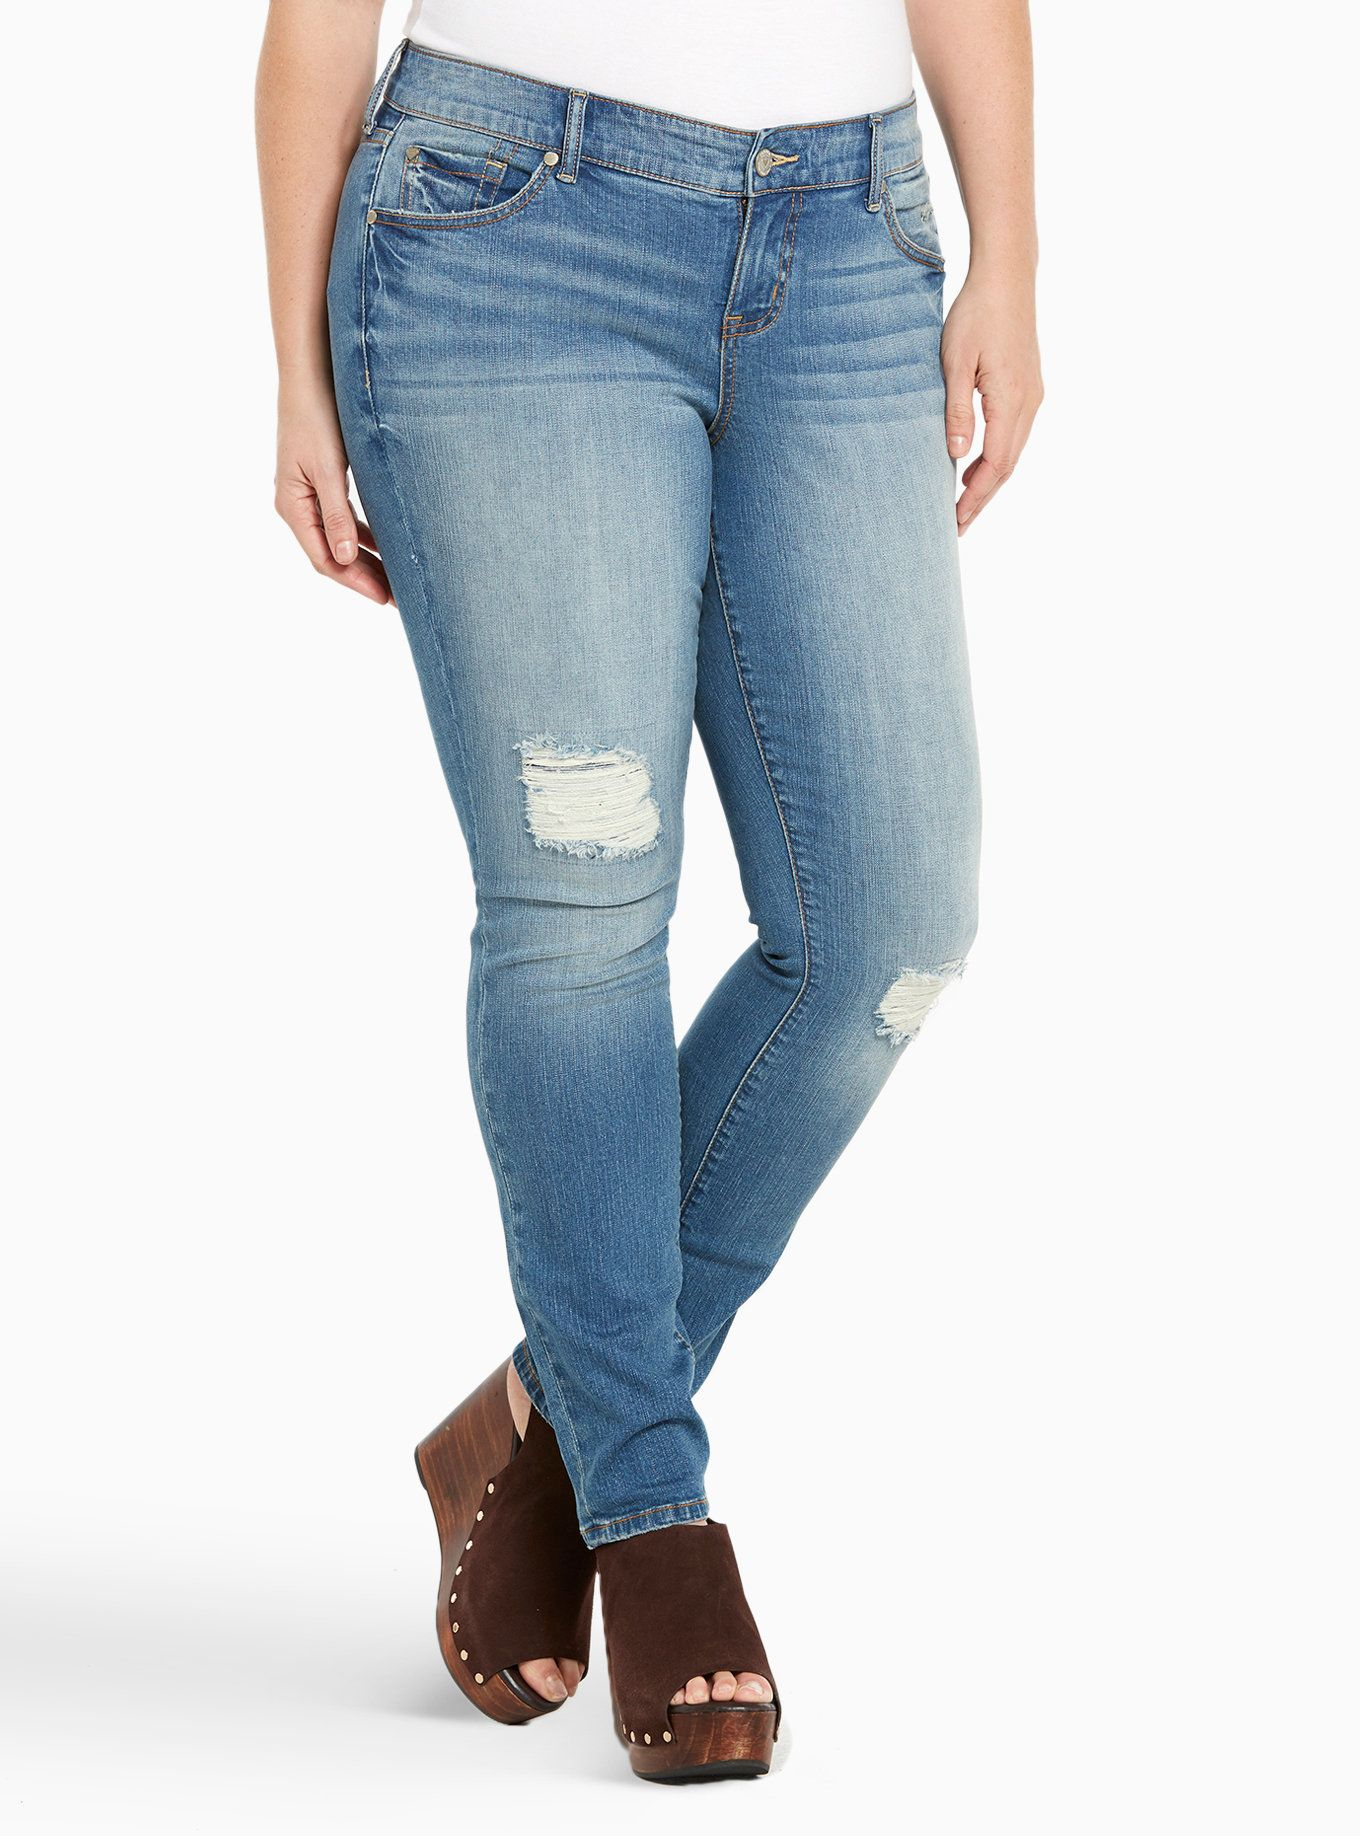 bc84dfa968d35 Torrid Skinny Jeans - Light Wash with Ripped Destruction